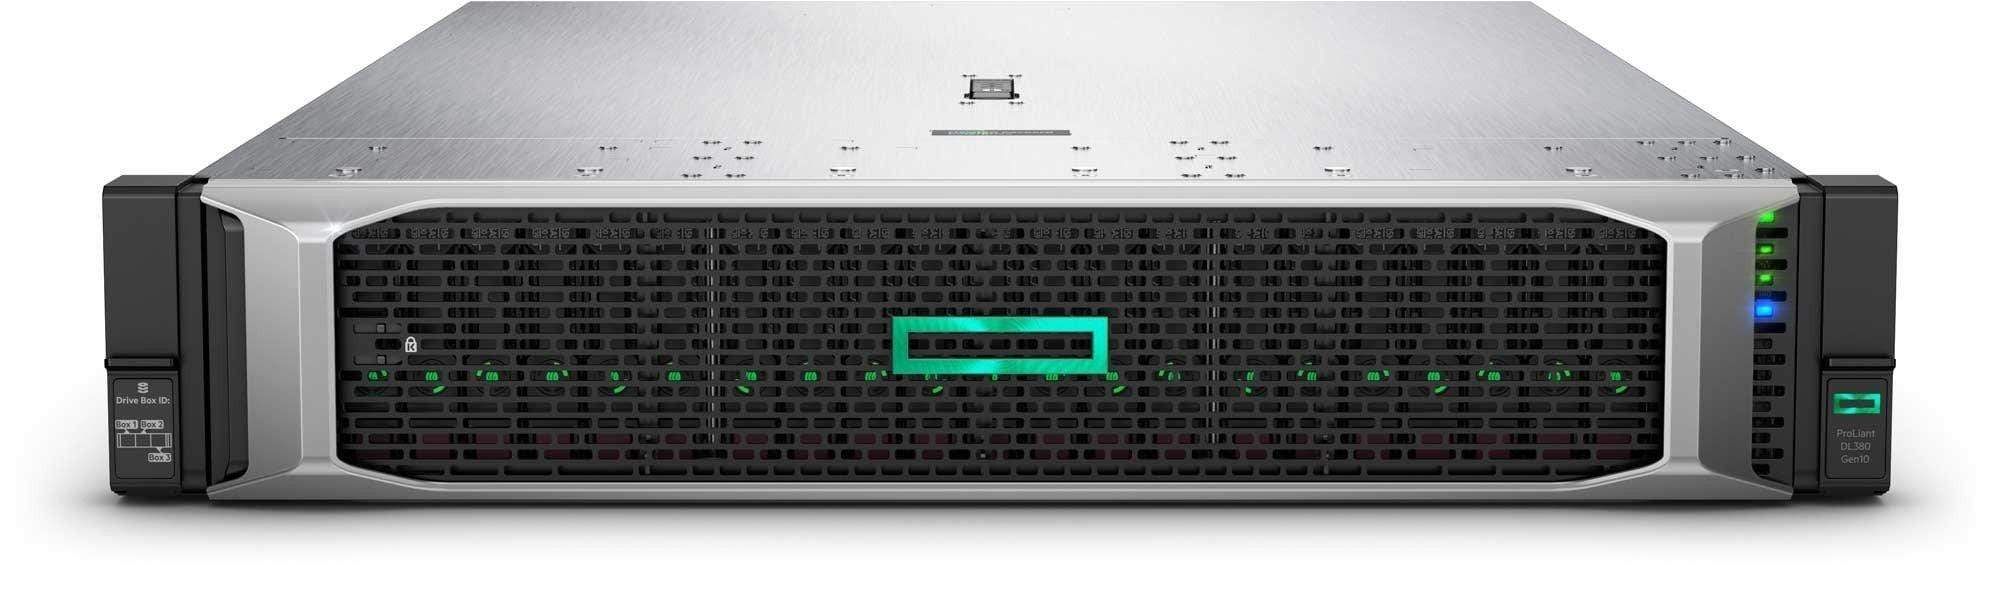 HP Enterprise P06423-B21 - HPE DL380 GEN10 6130 1P 64G 8SFF Server  - IT Yuda